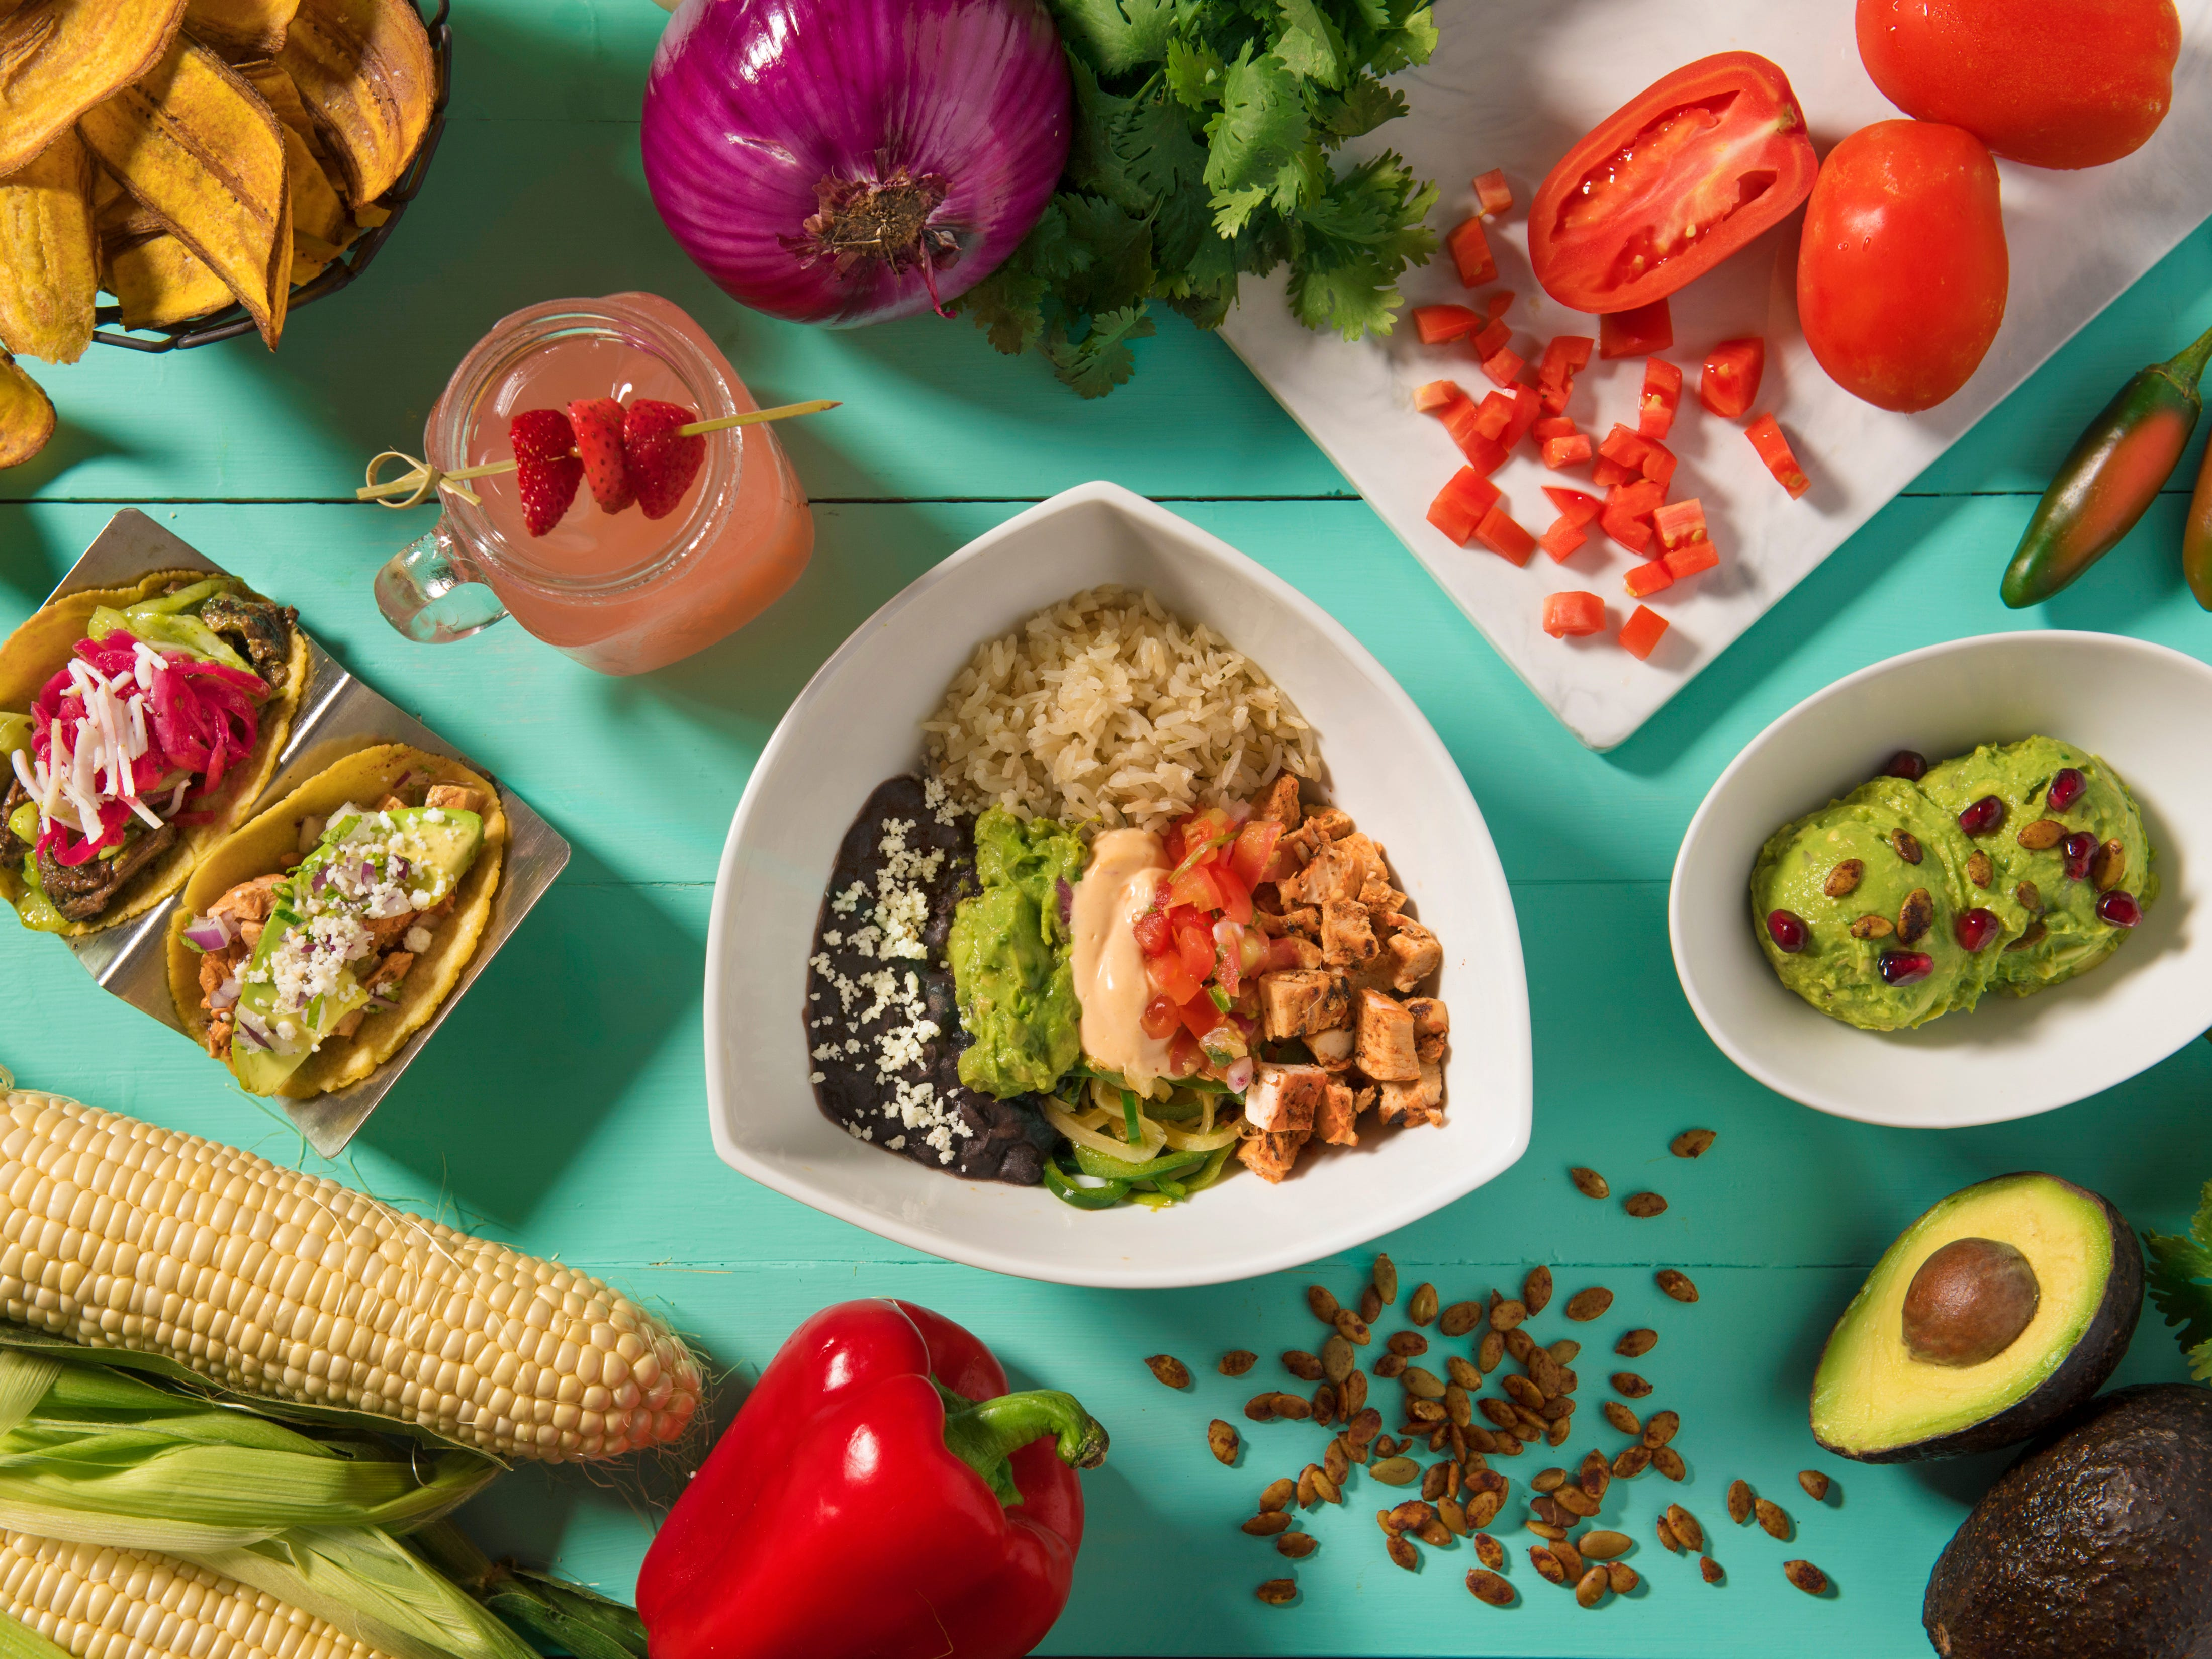 Tocaya Organica has healthful, modern Mexican food at Kierland Commons in Phoenix